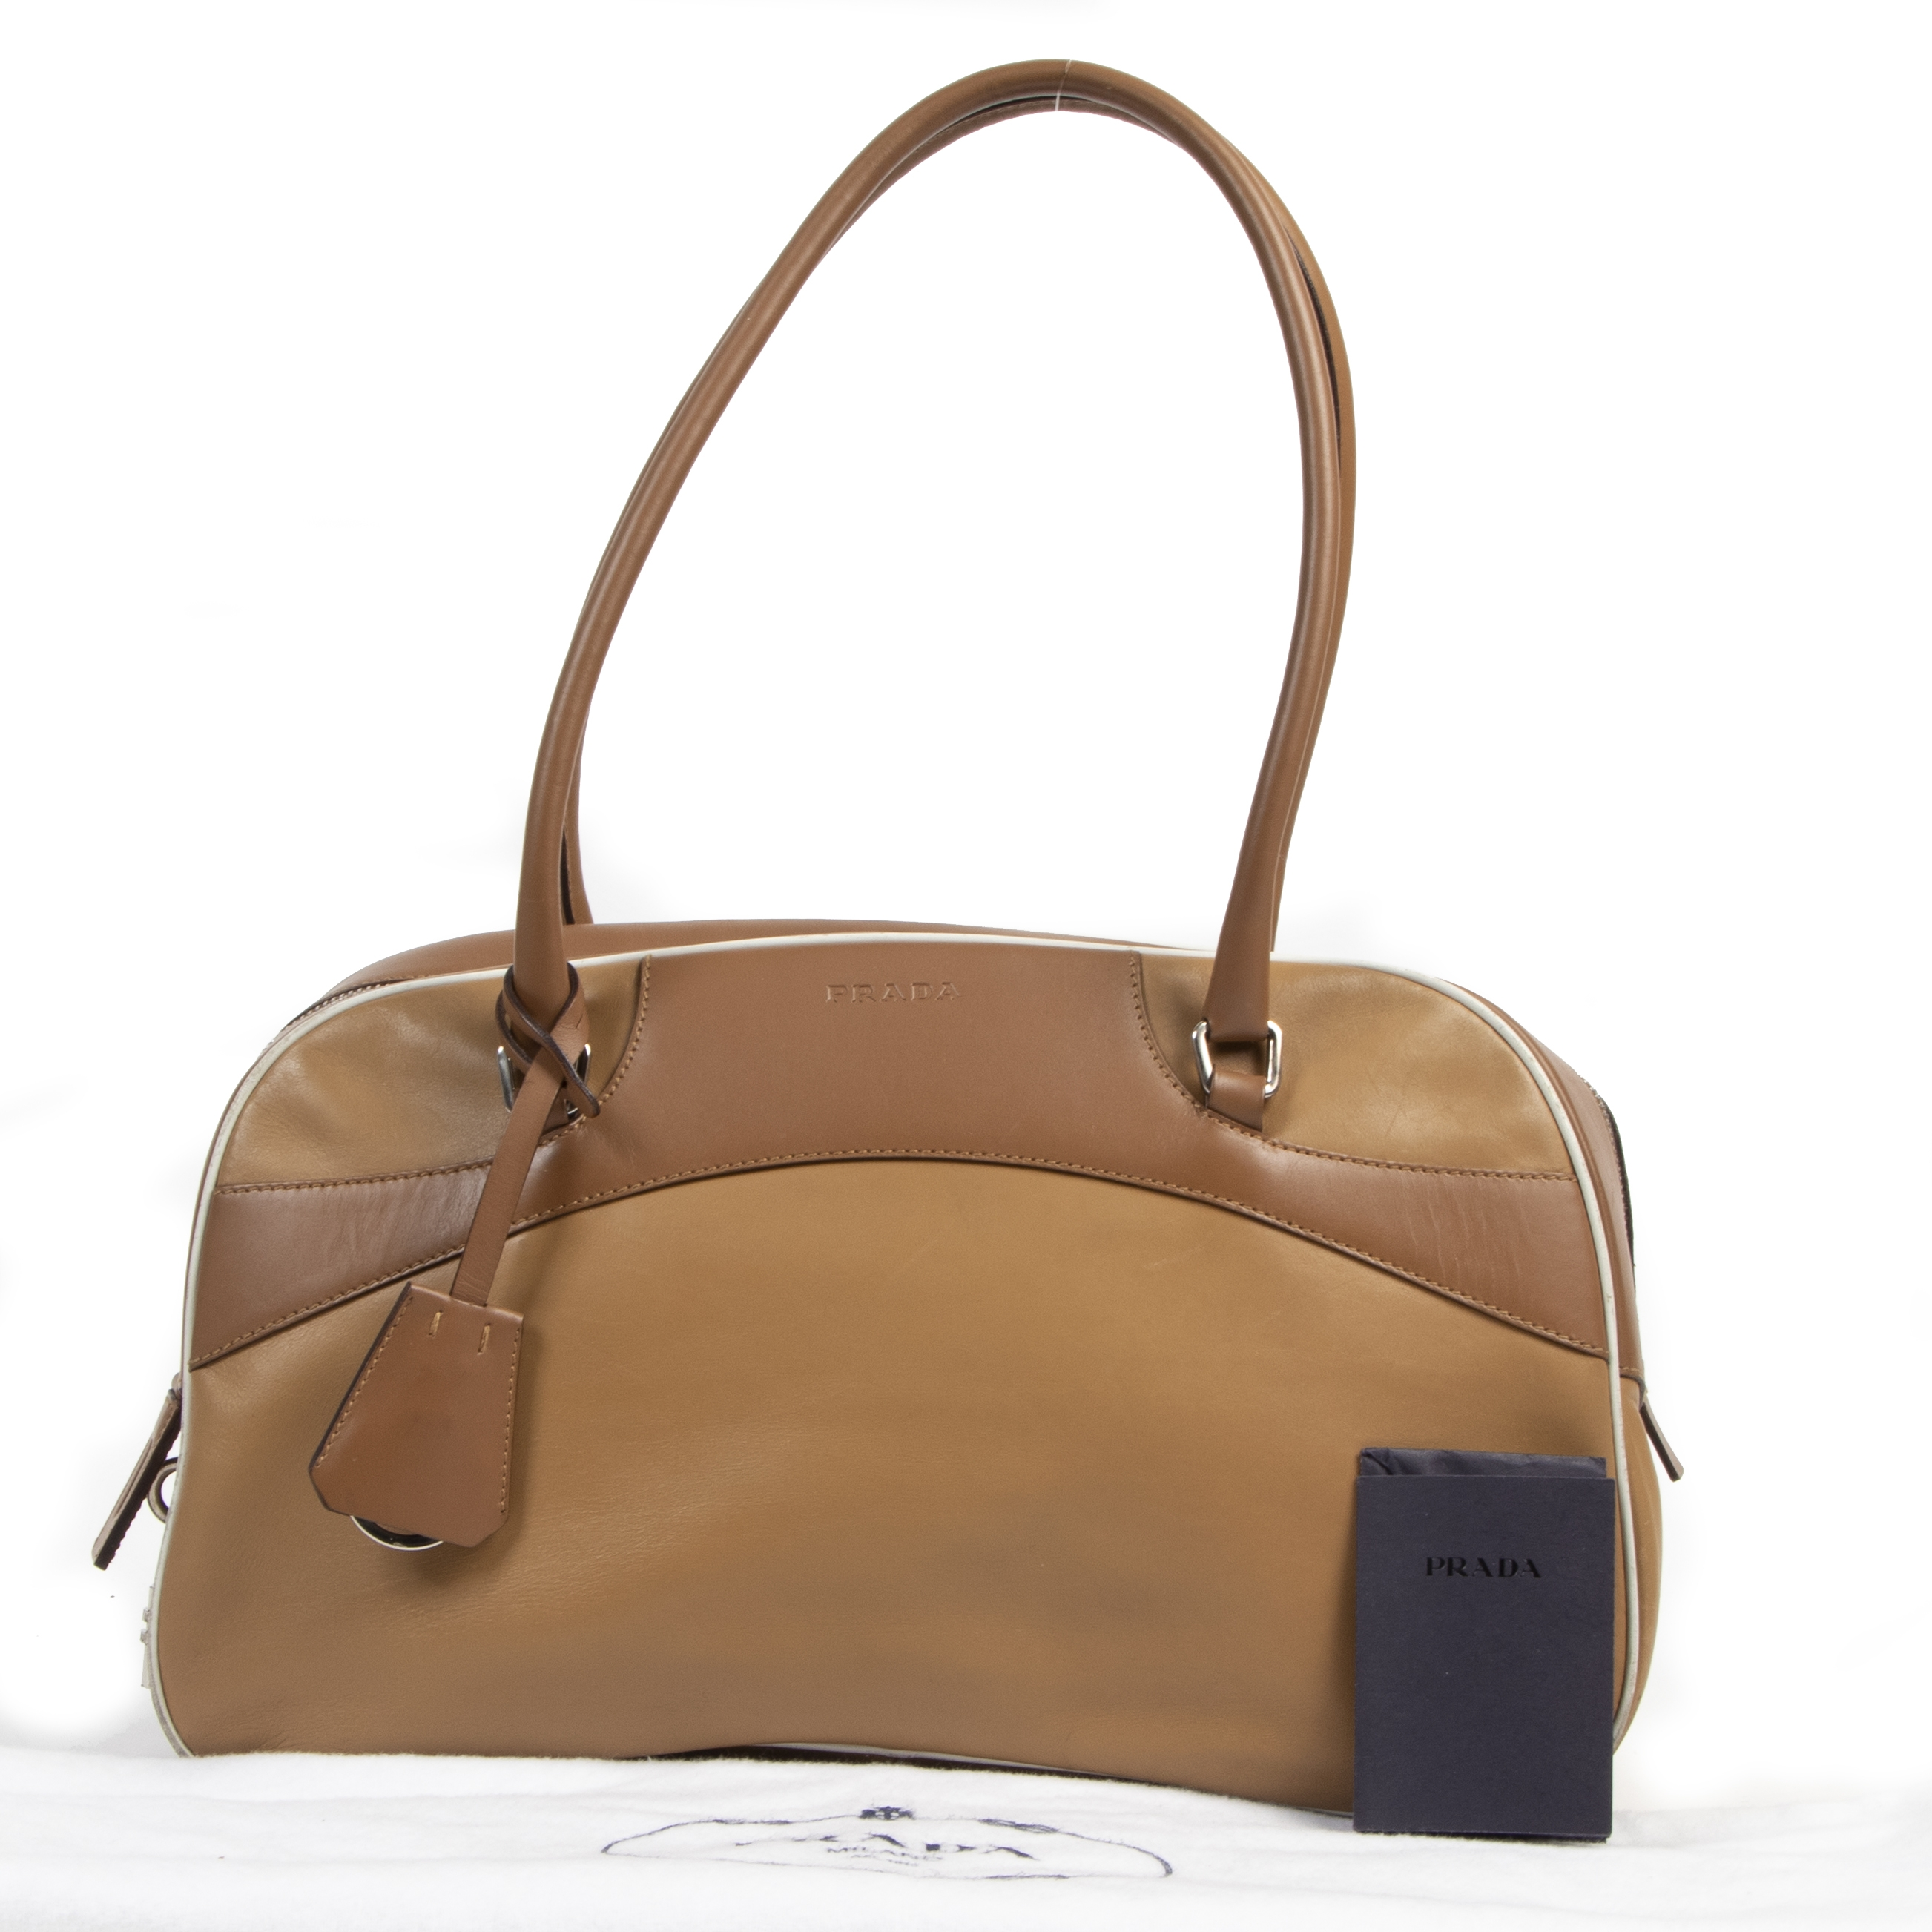 Prada Toffee Leather Bowling Shoulder Bag